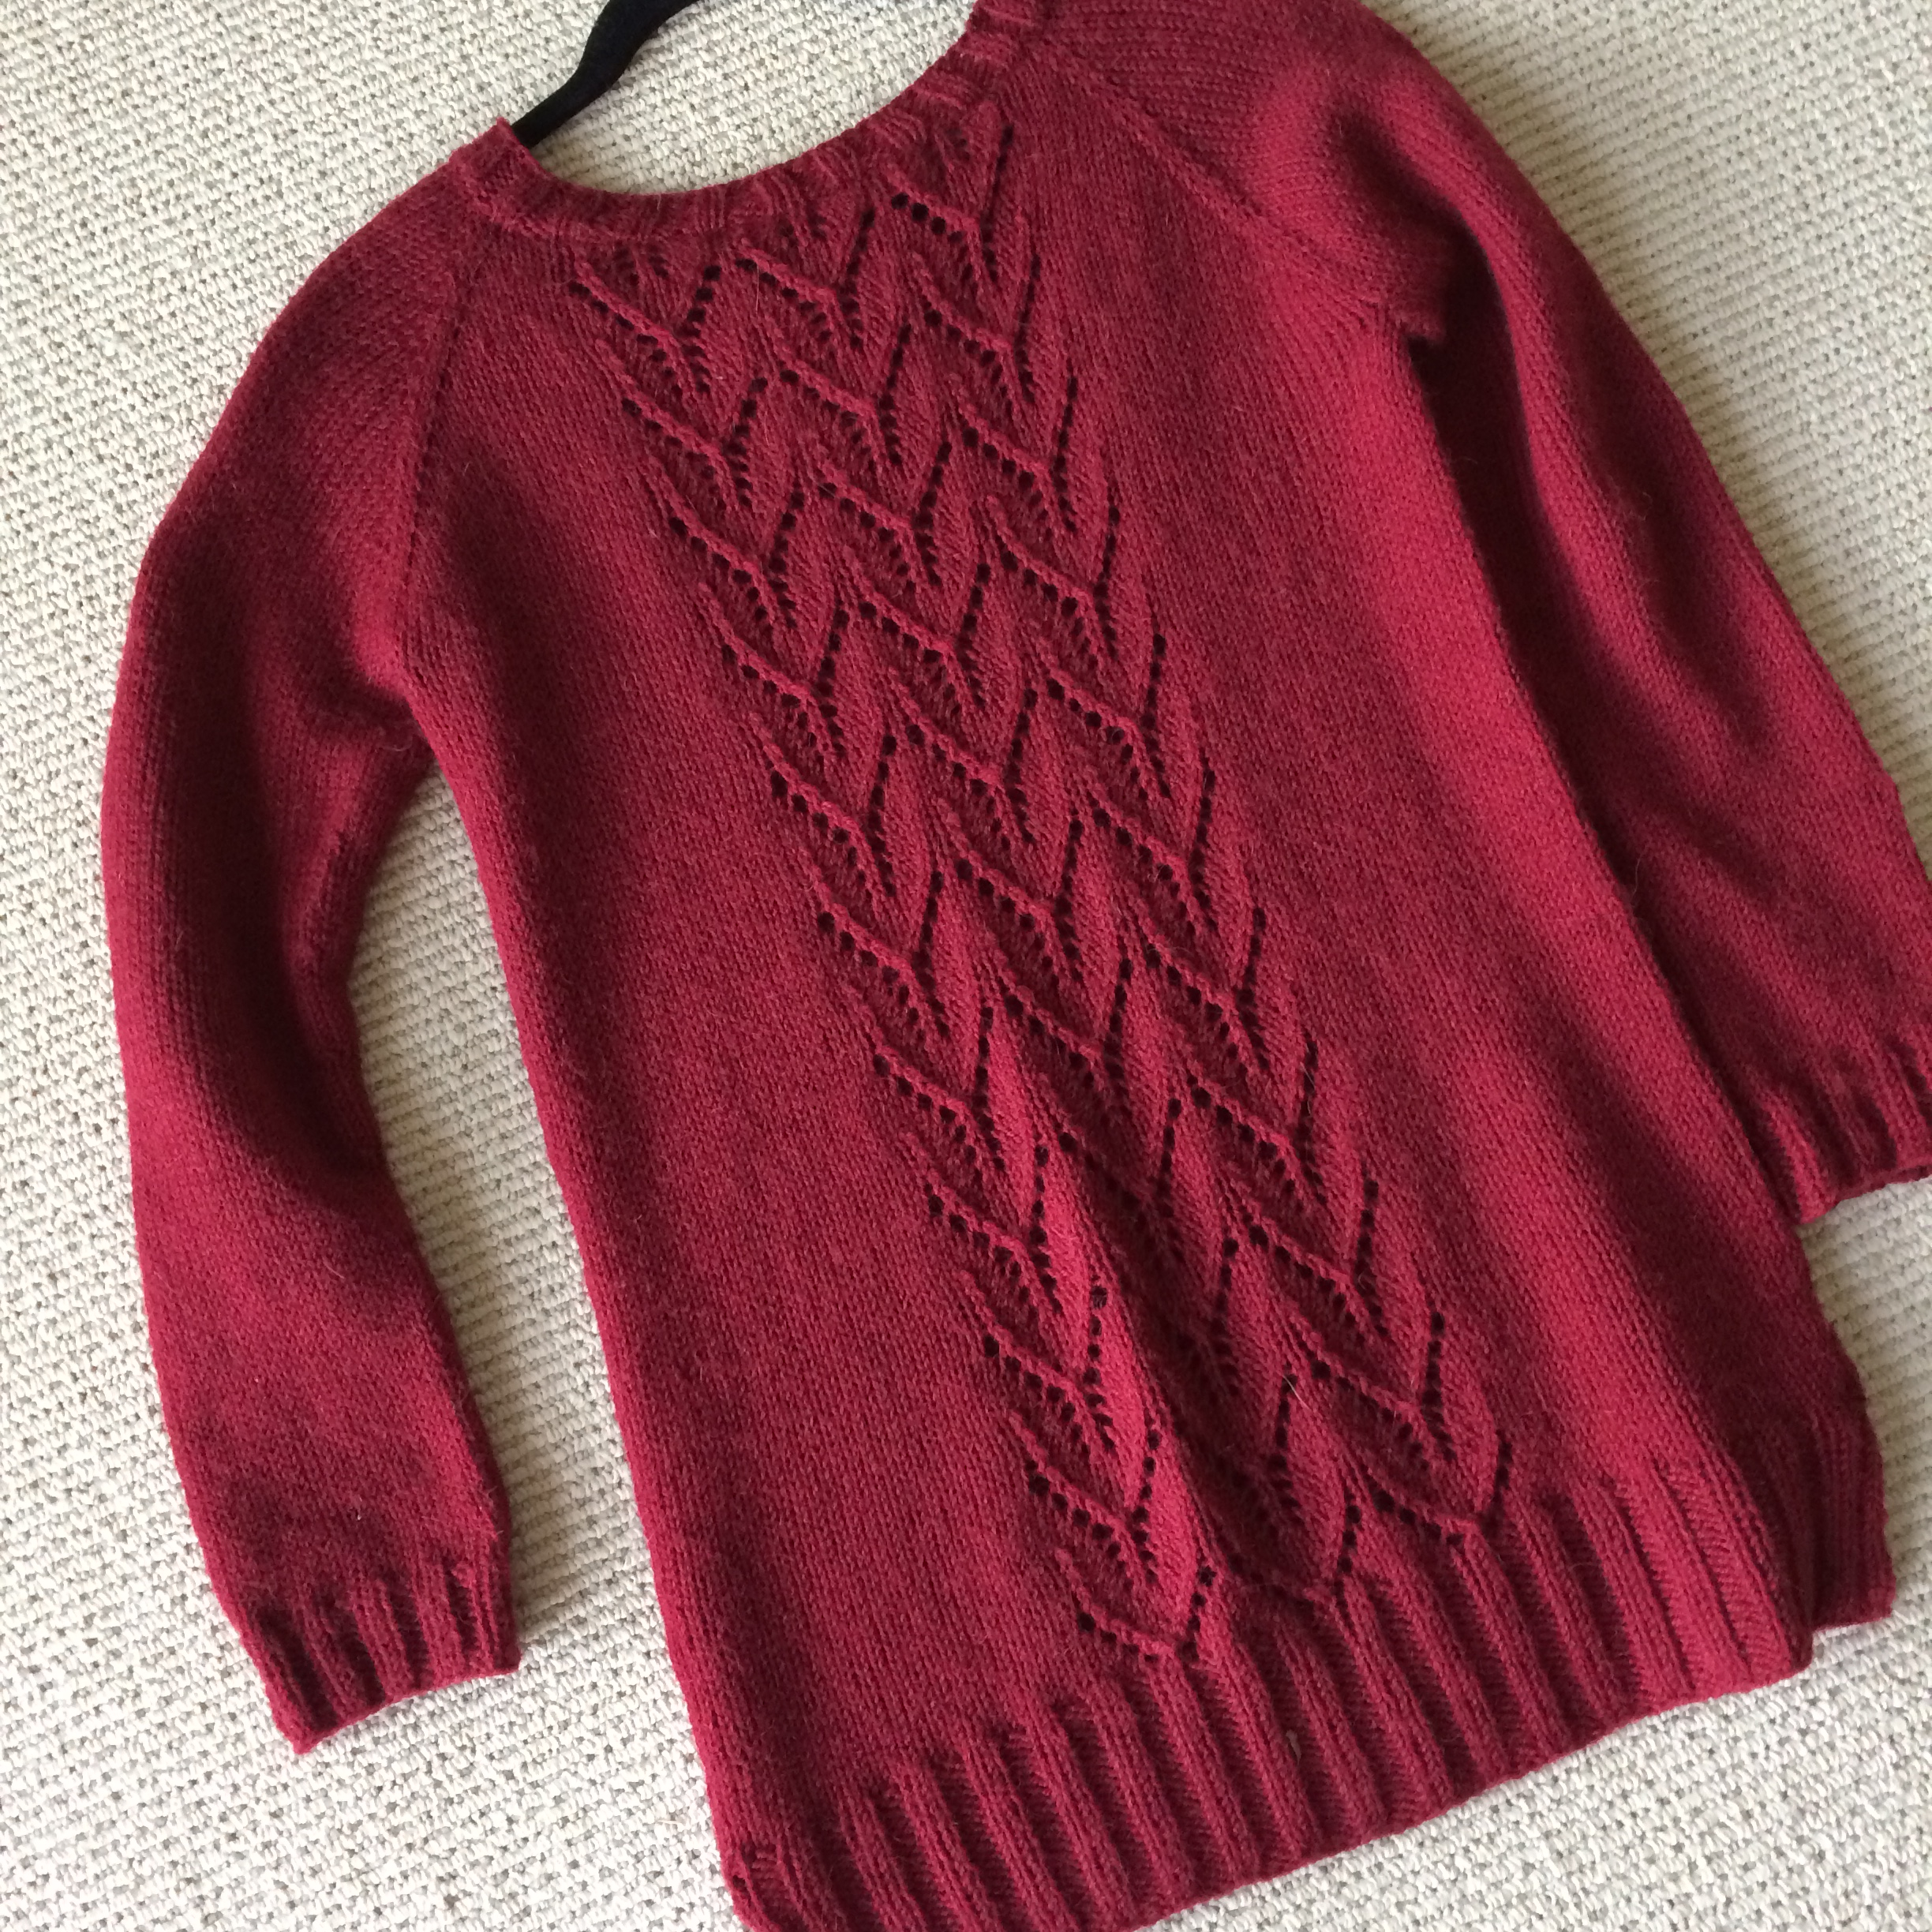 Dragon Lady Knits | Fun Knits with a Sophisticated Flair